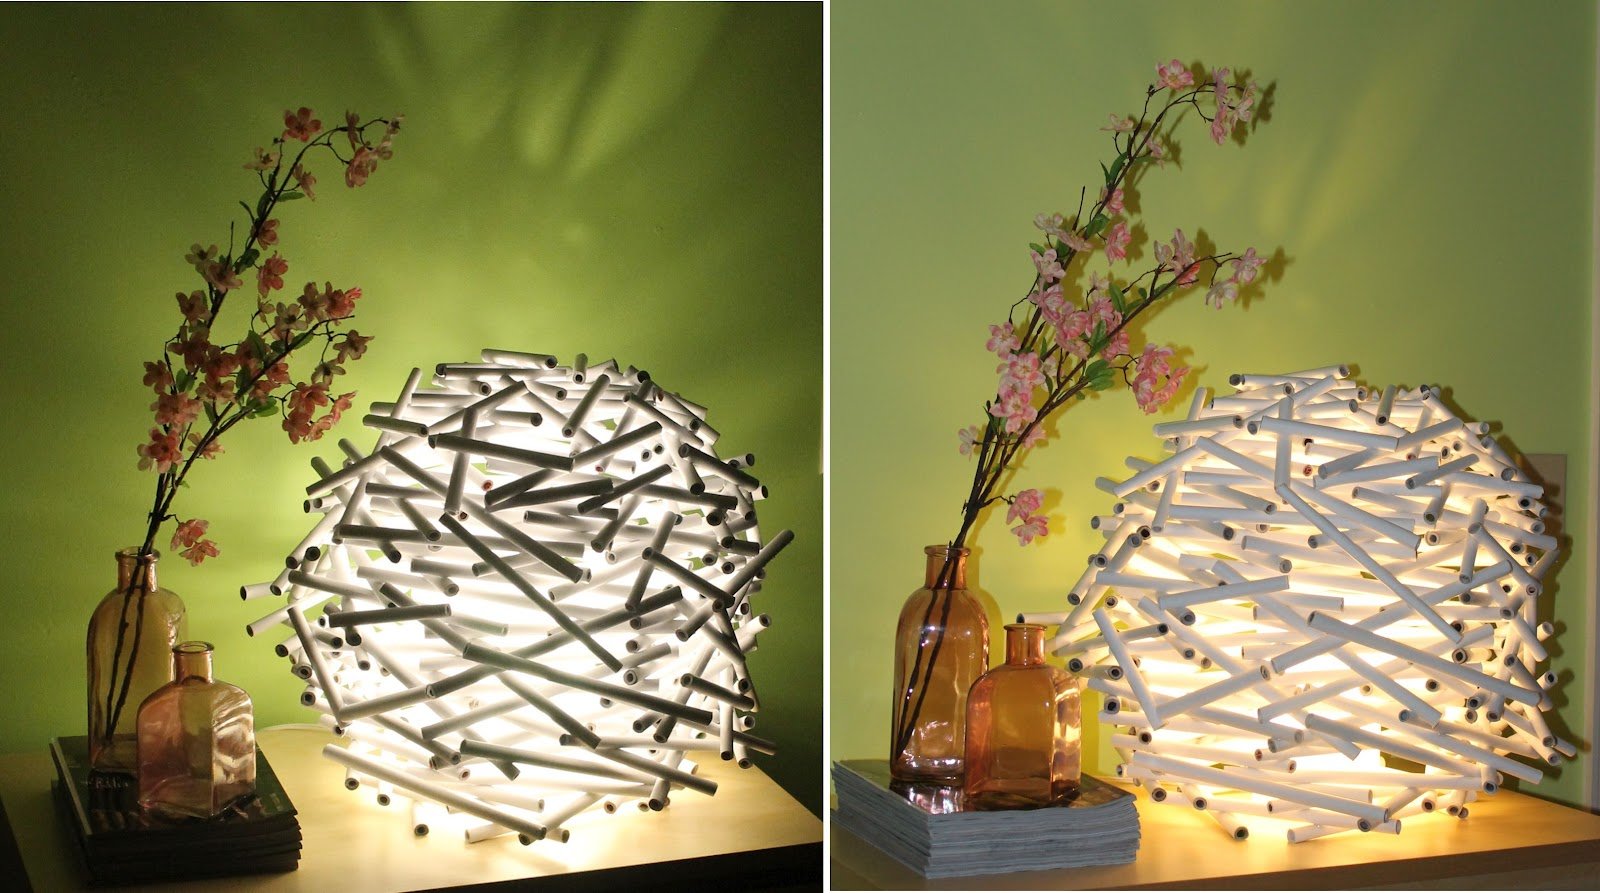 Diy how to make a birds nest lamp shade out of newspaper catch pin it aloadofball Choice Image